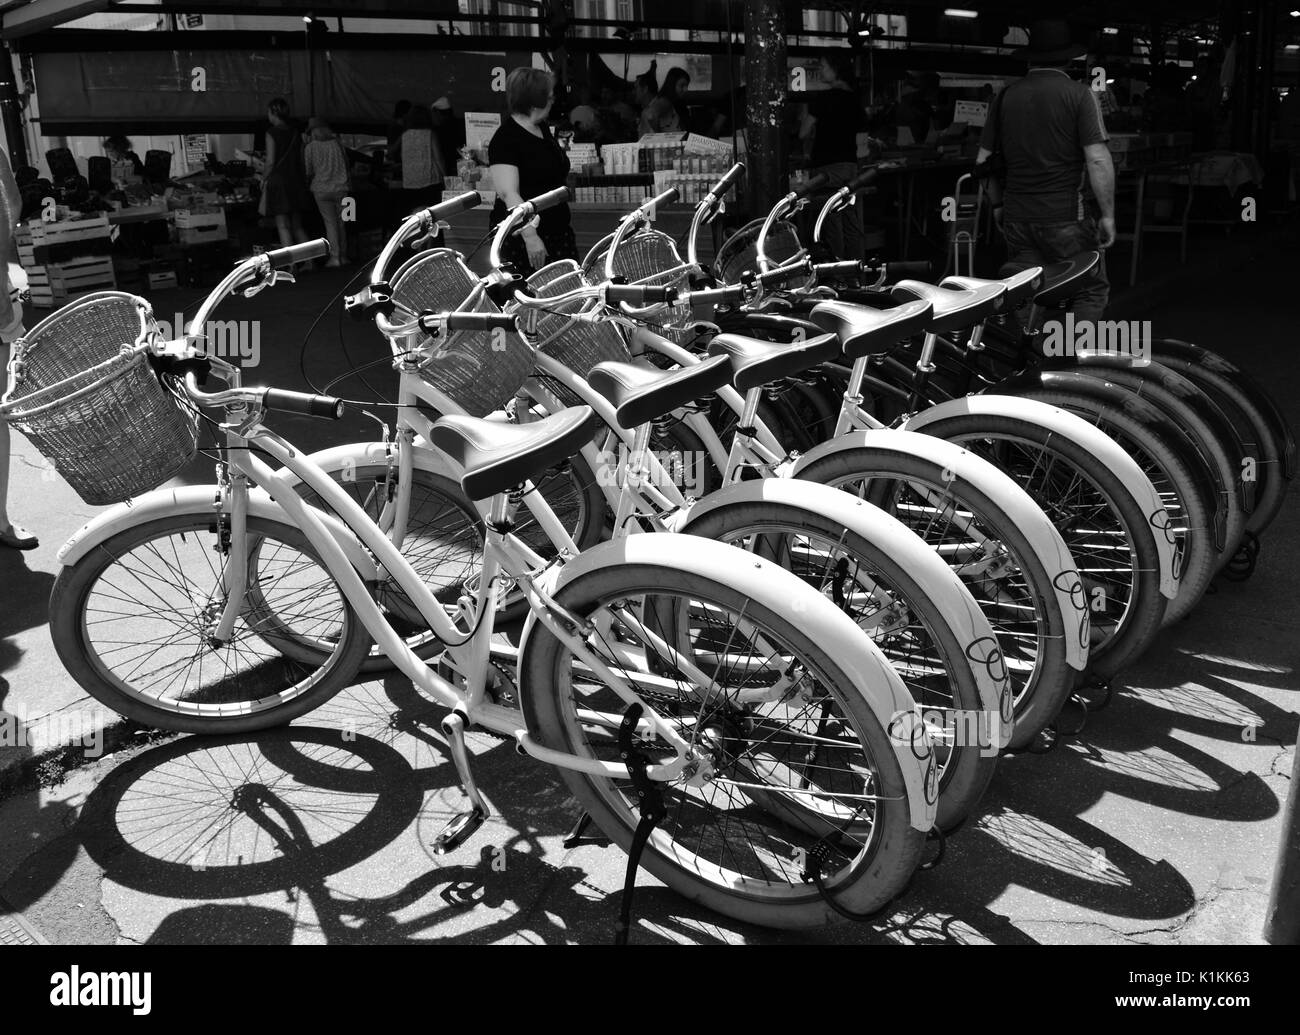 Bikes for hire parked in Antibes France - Stock Image